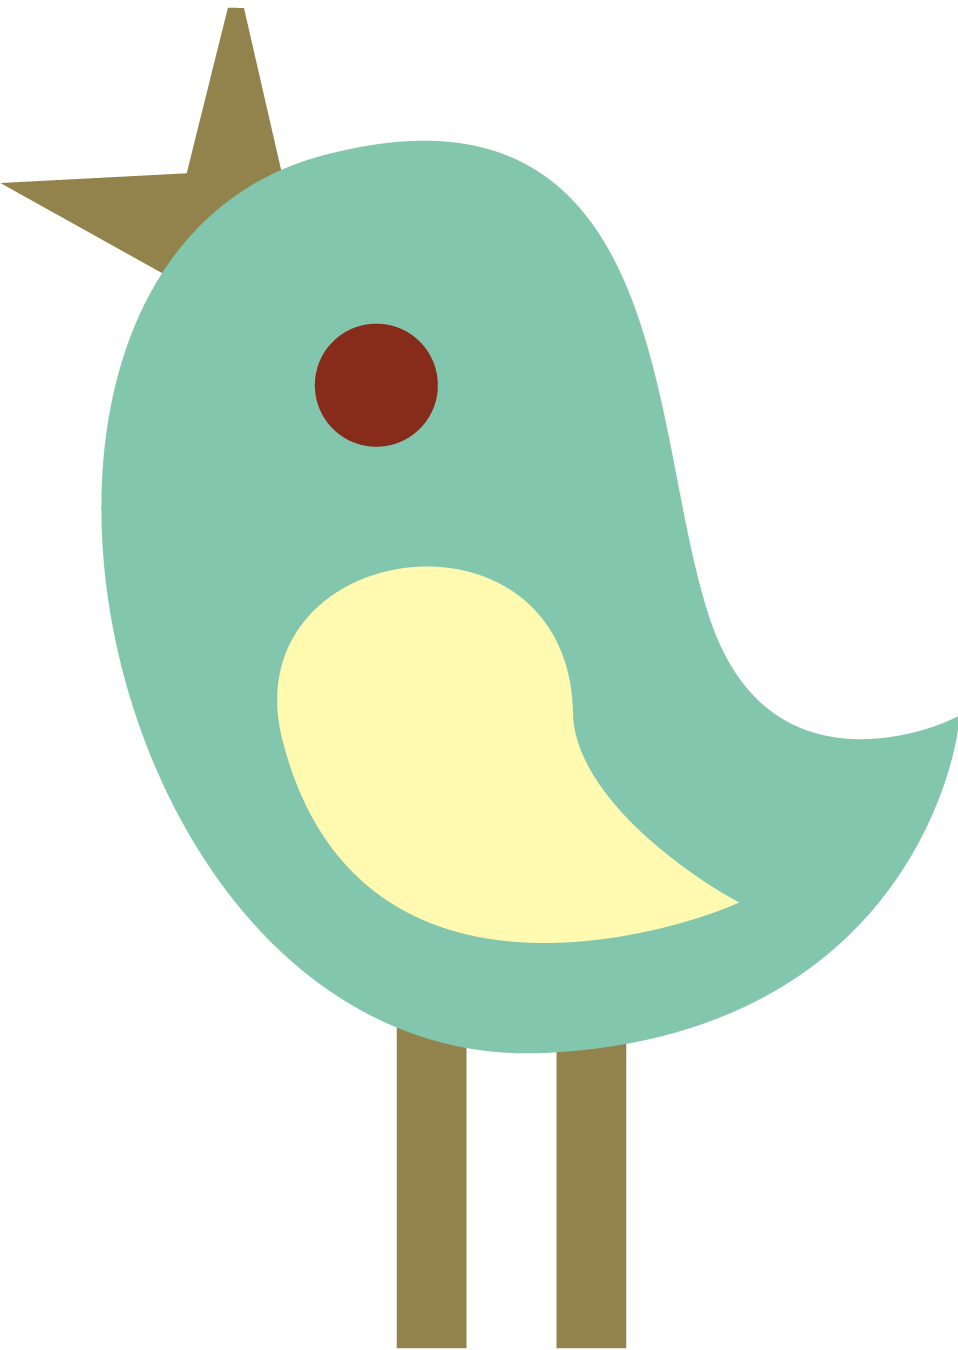 Cute Birds Cliparts Great For Any Projects Blog Paper Craft And